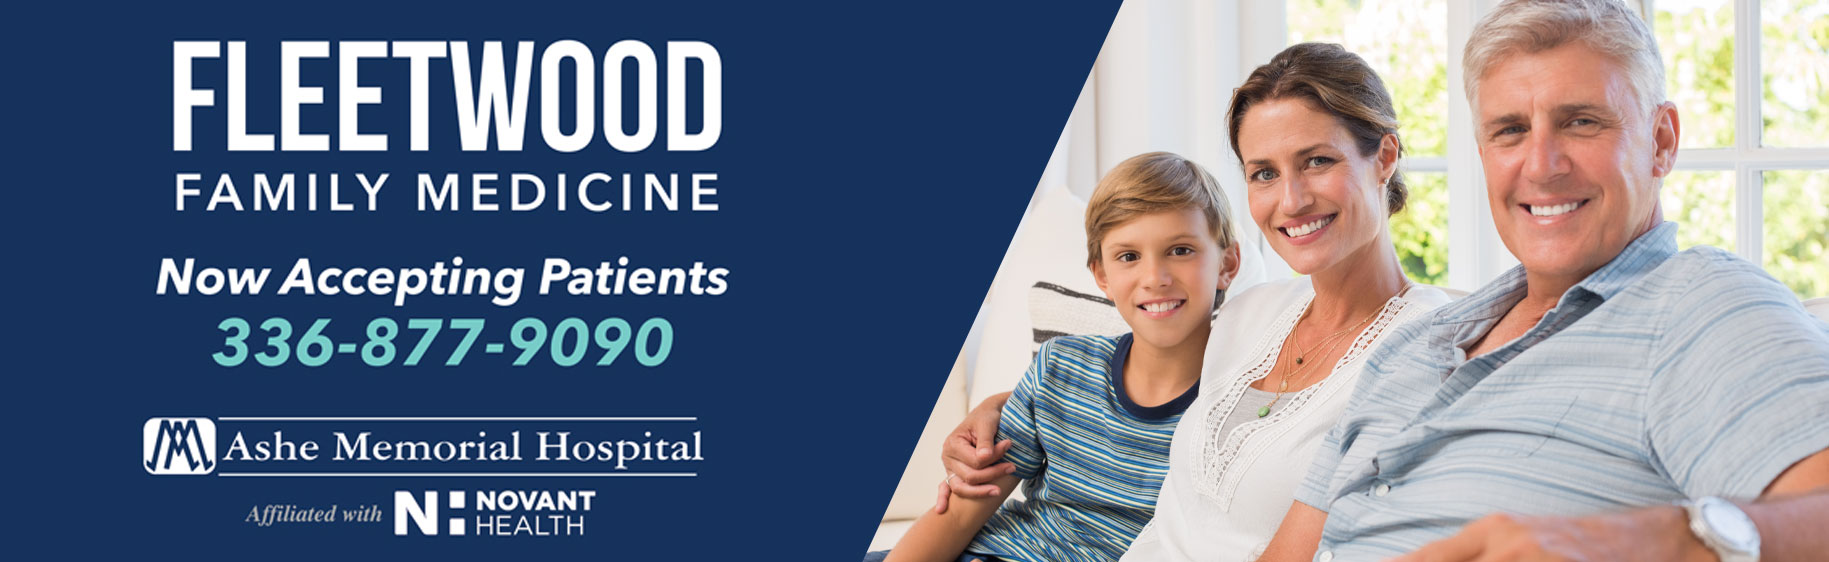 Picture of a man, woman, and young boy sitting on a couch smiling   Banner says: FLEETWOOD FAMILY MEDICINE Now Accepting Patients 336-887-9090 Ashe Memorial Hospital  Affiliated with N: NOVANT HEALTH